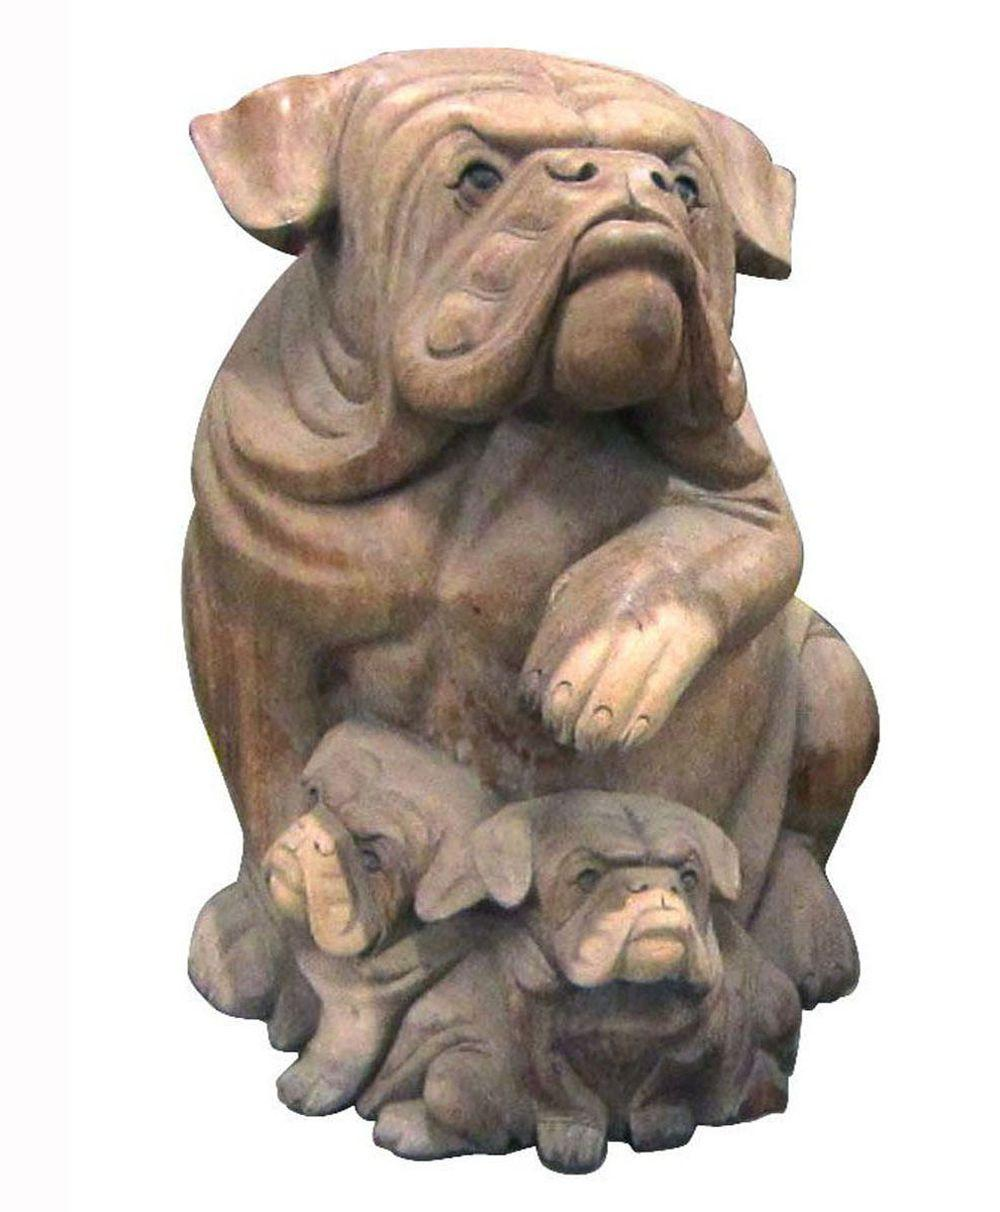 Bulldog sculpture